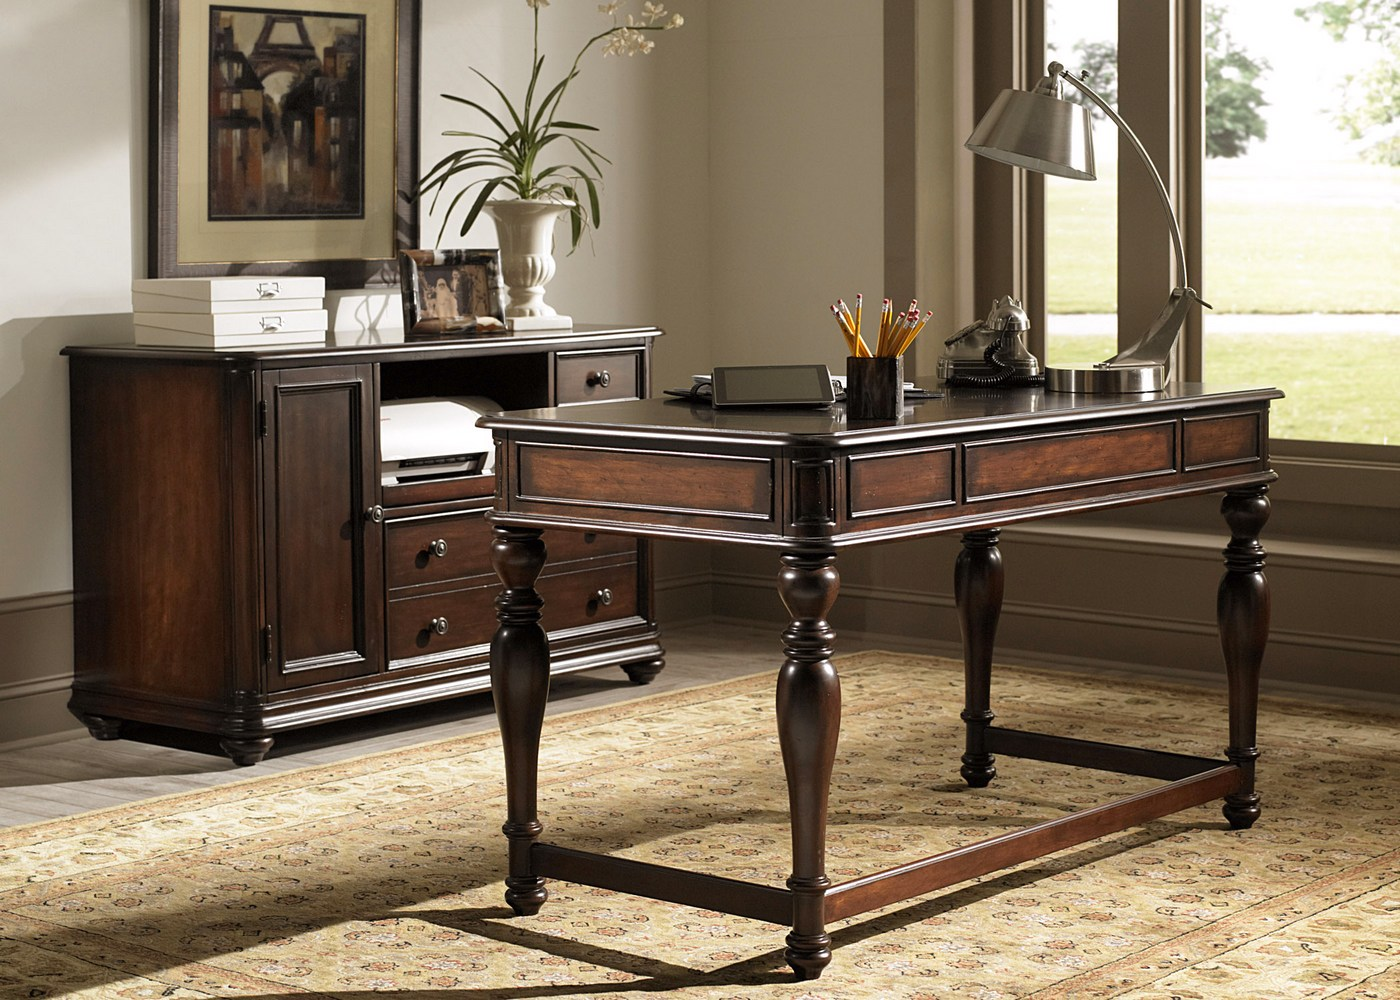 Kingston plantation home office desk credenza set for Plantation desk plans